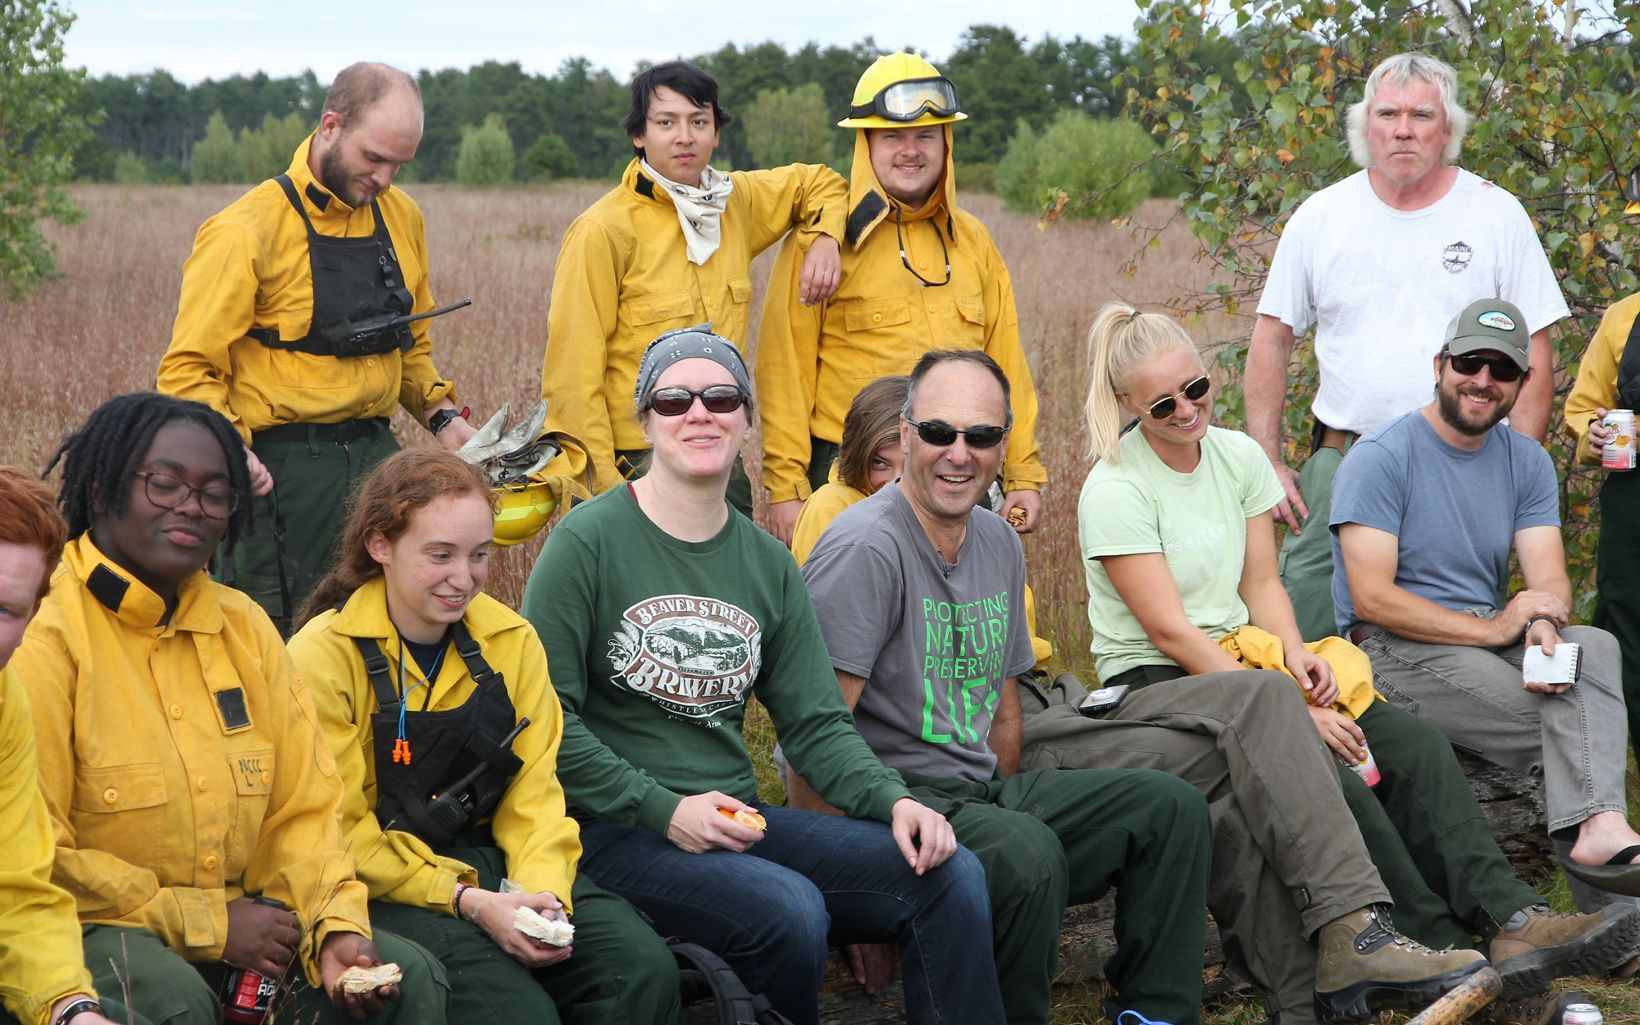 Prescribed fire crew team members relaxing after a controlled burn at Kennebunk Plains Preserve.